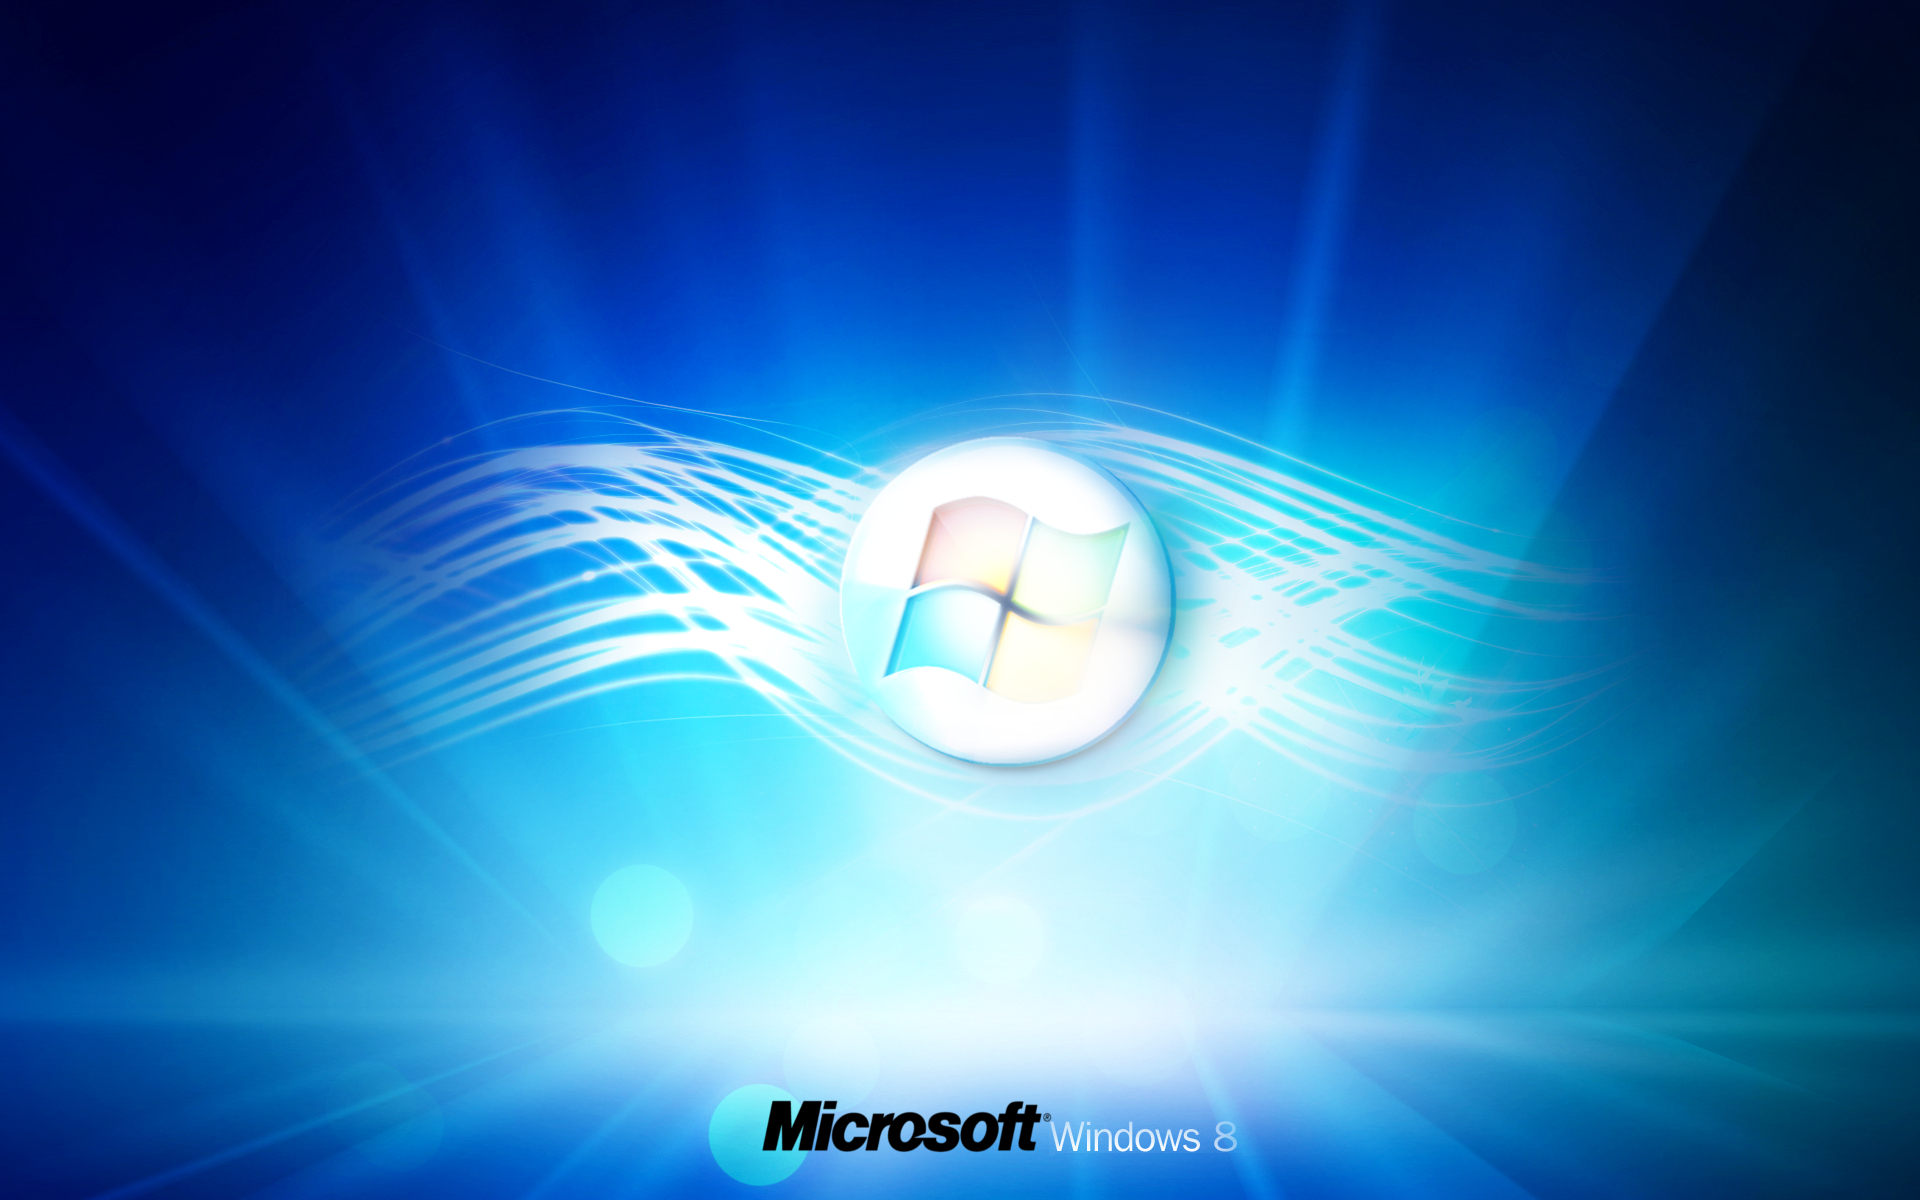 Windows 8 Images HD Wallpaper And Background Photos